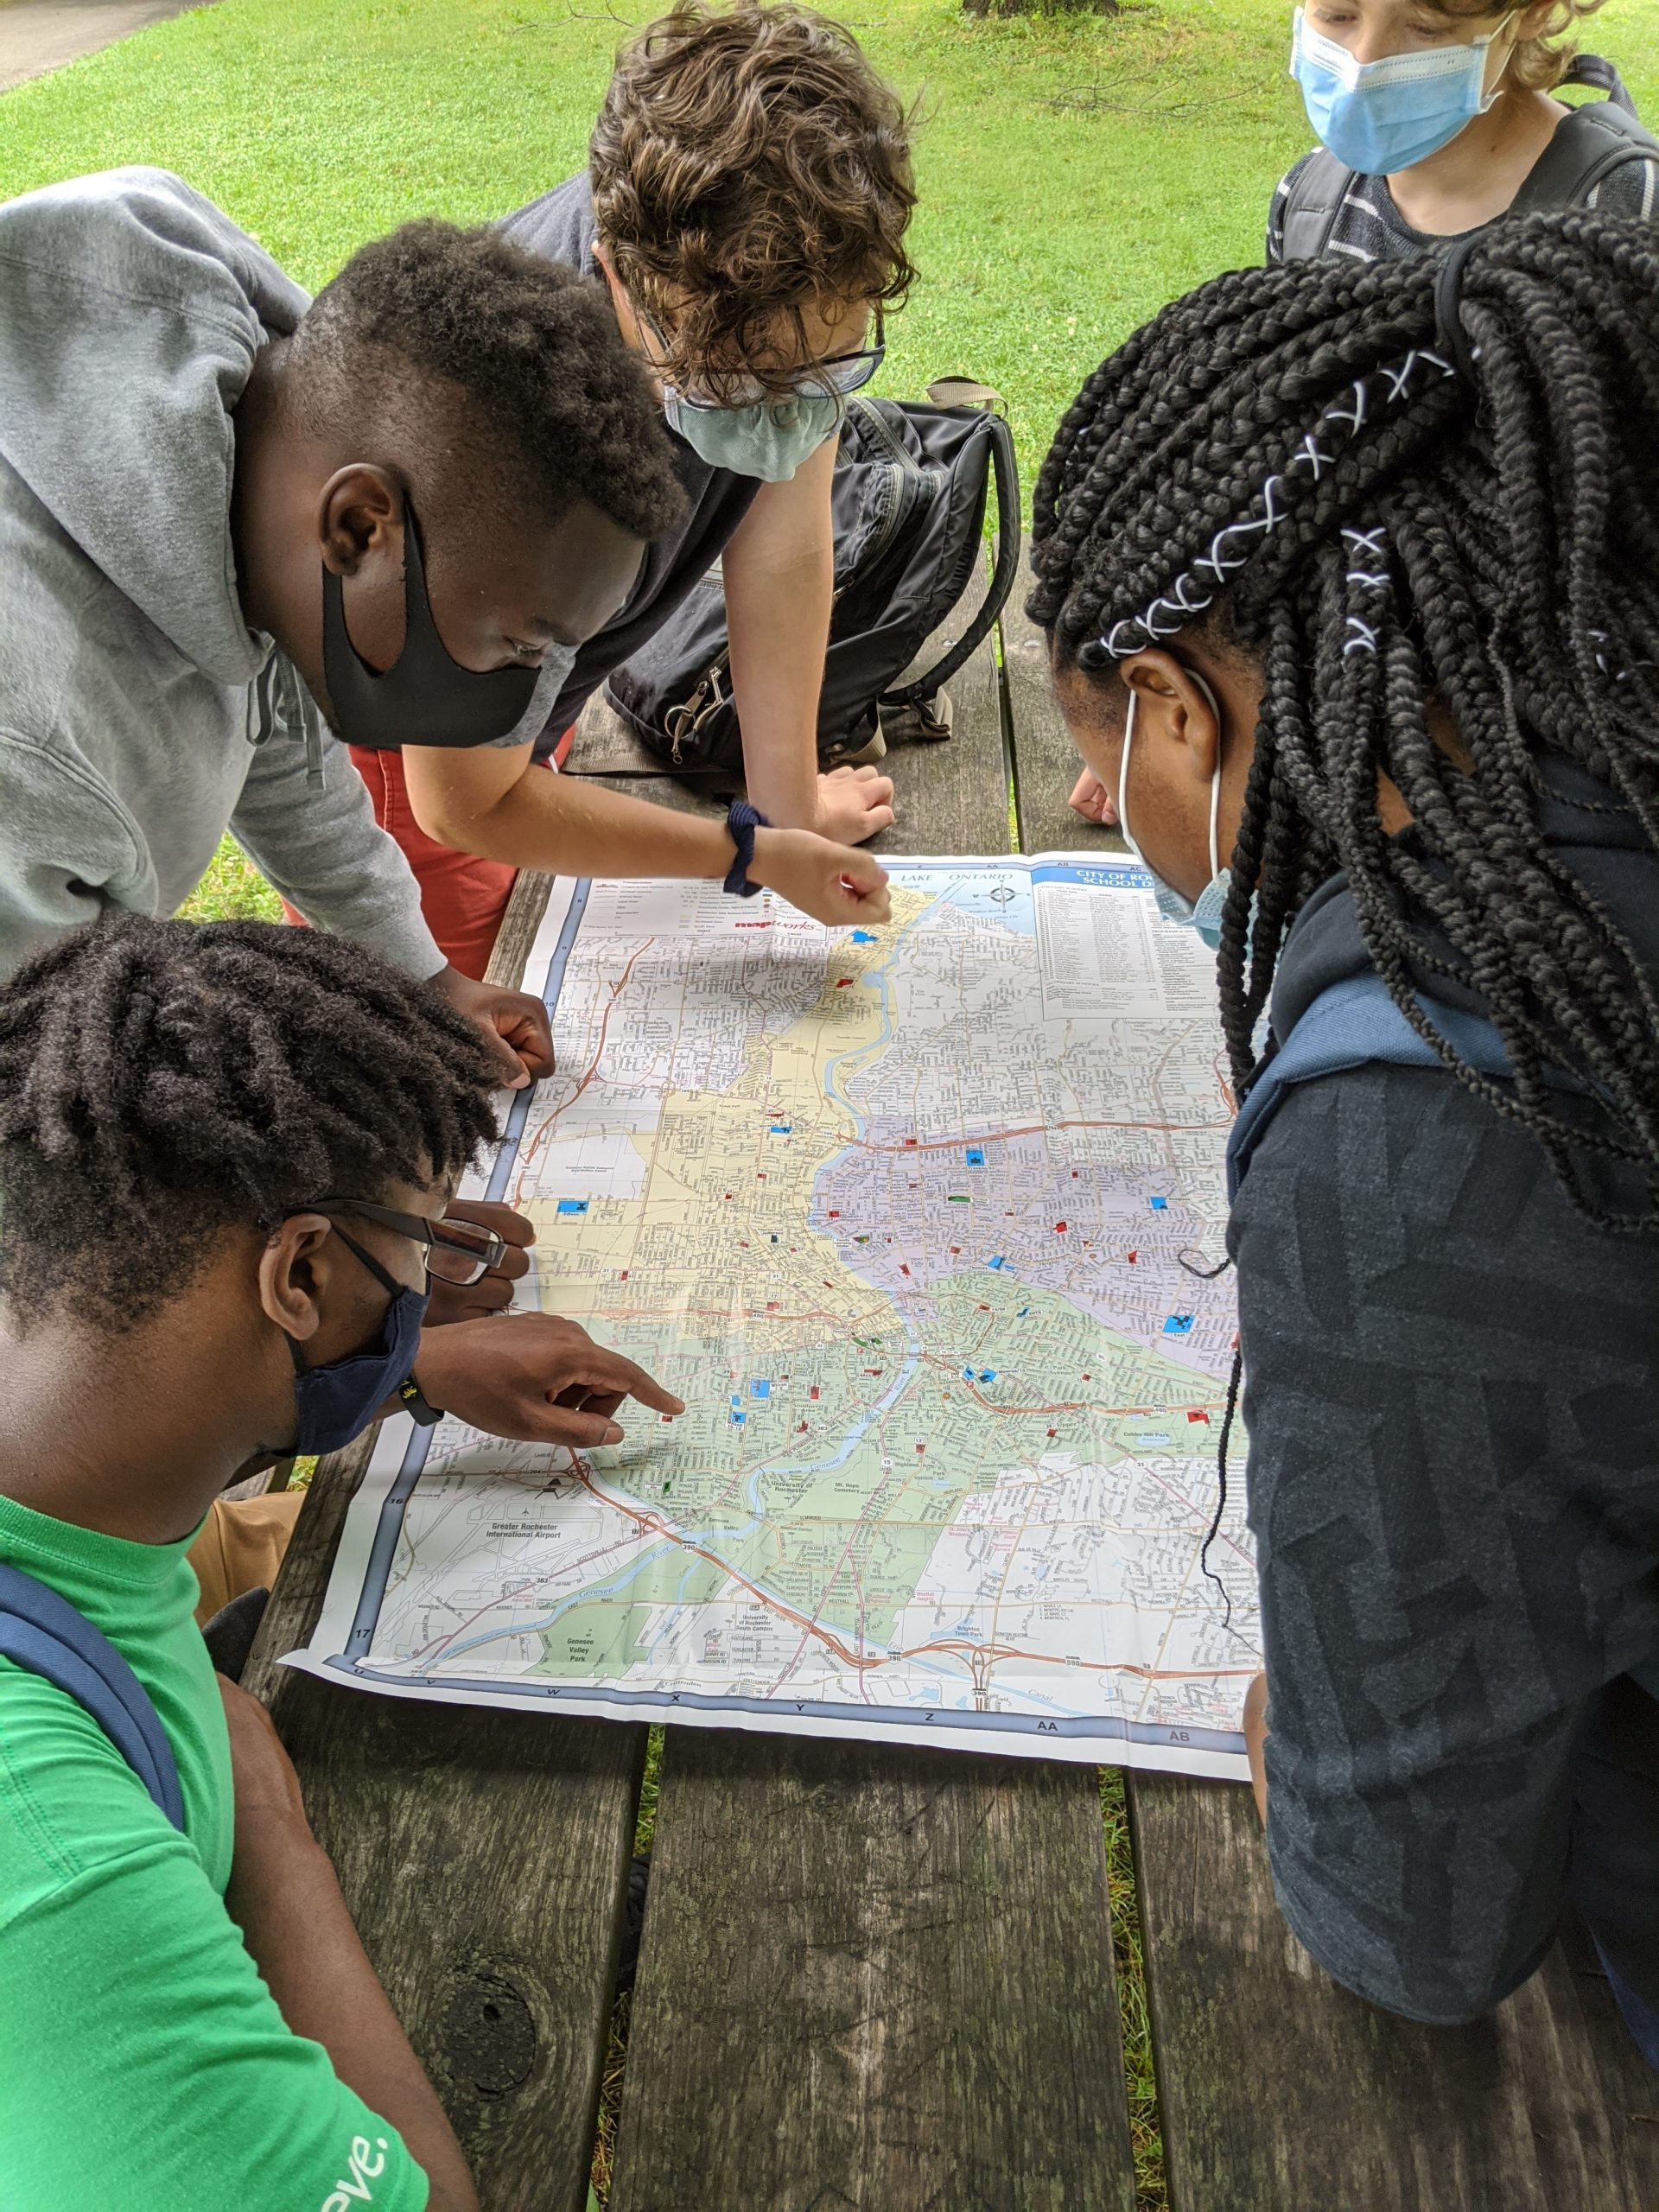 Urban Ecology is a workforce development program that teaches Urban Ecologists the skills they need to take care of and enjoy the world around them.